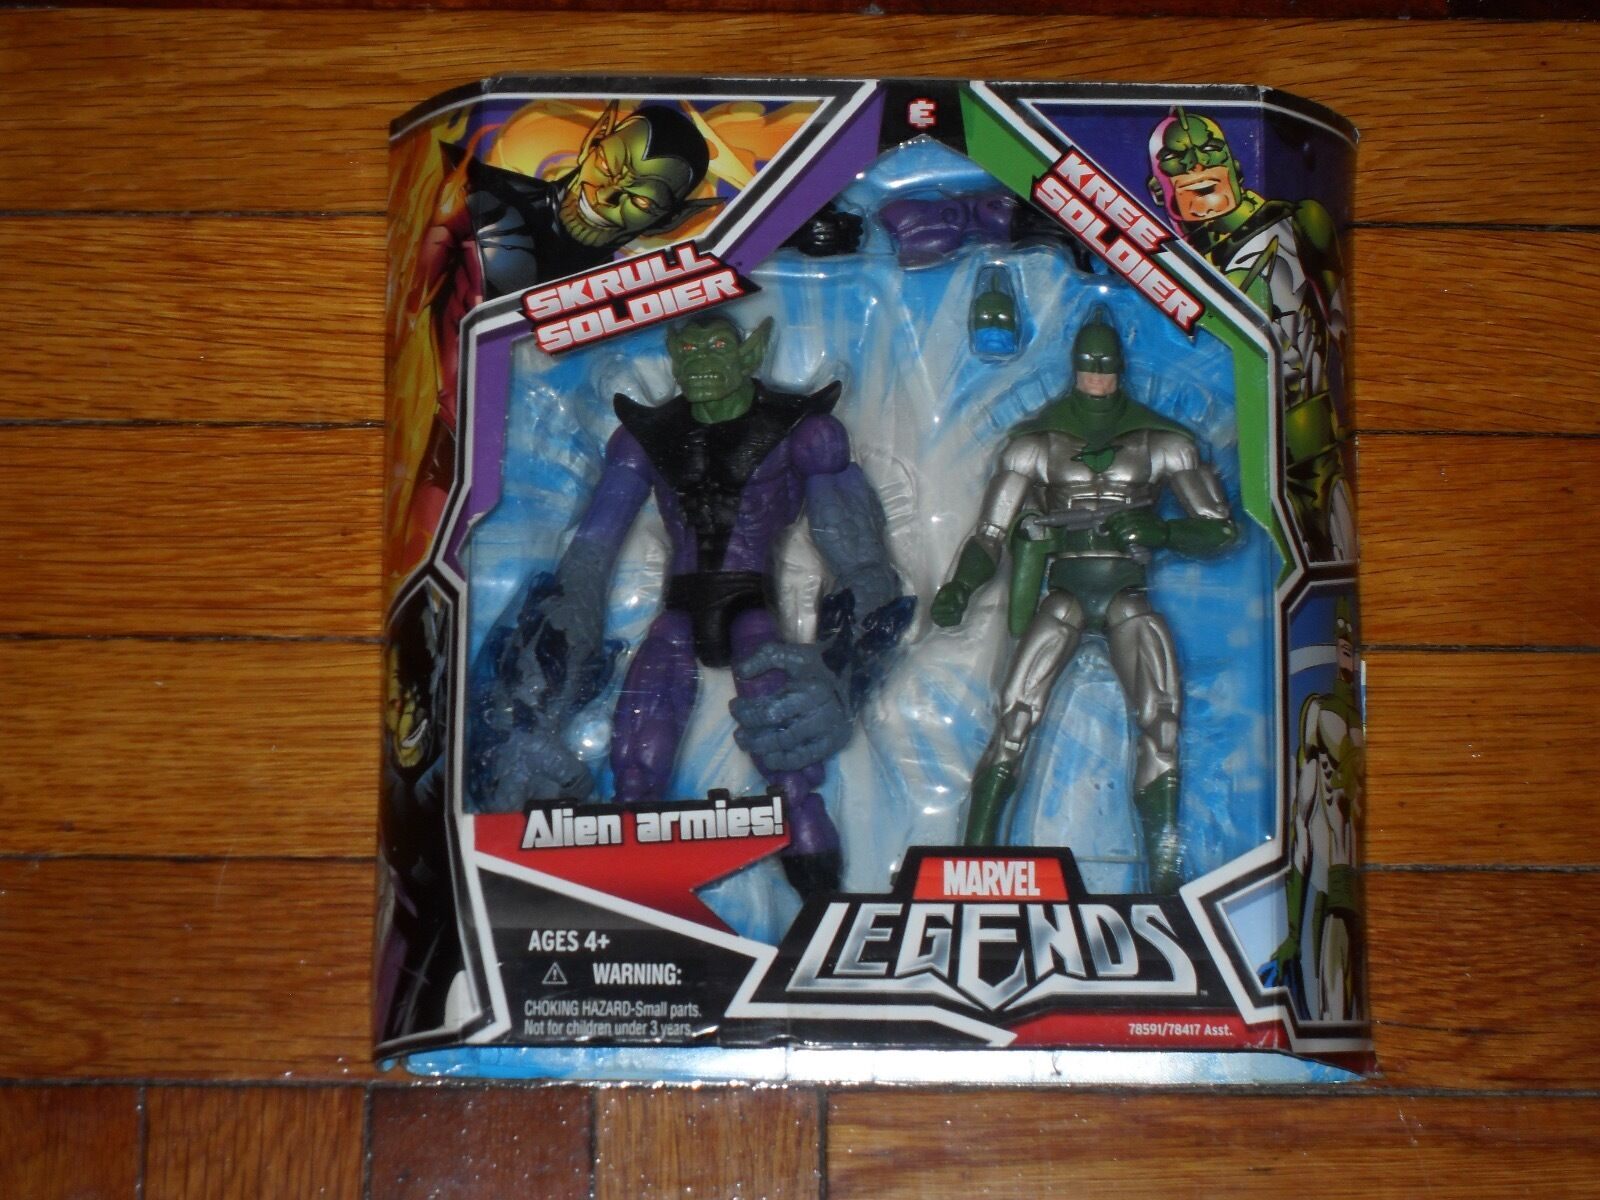 Marvel Legends Skrull Soldier & Kree Soldier 6in. 6in. 6in. Action Figures 51b65a